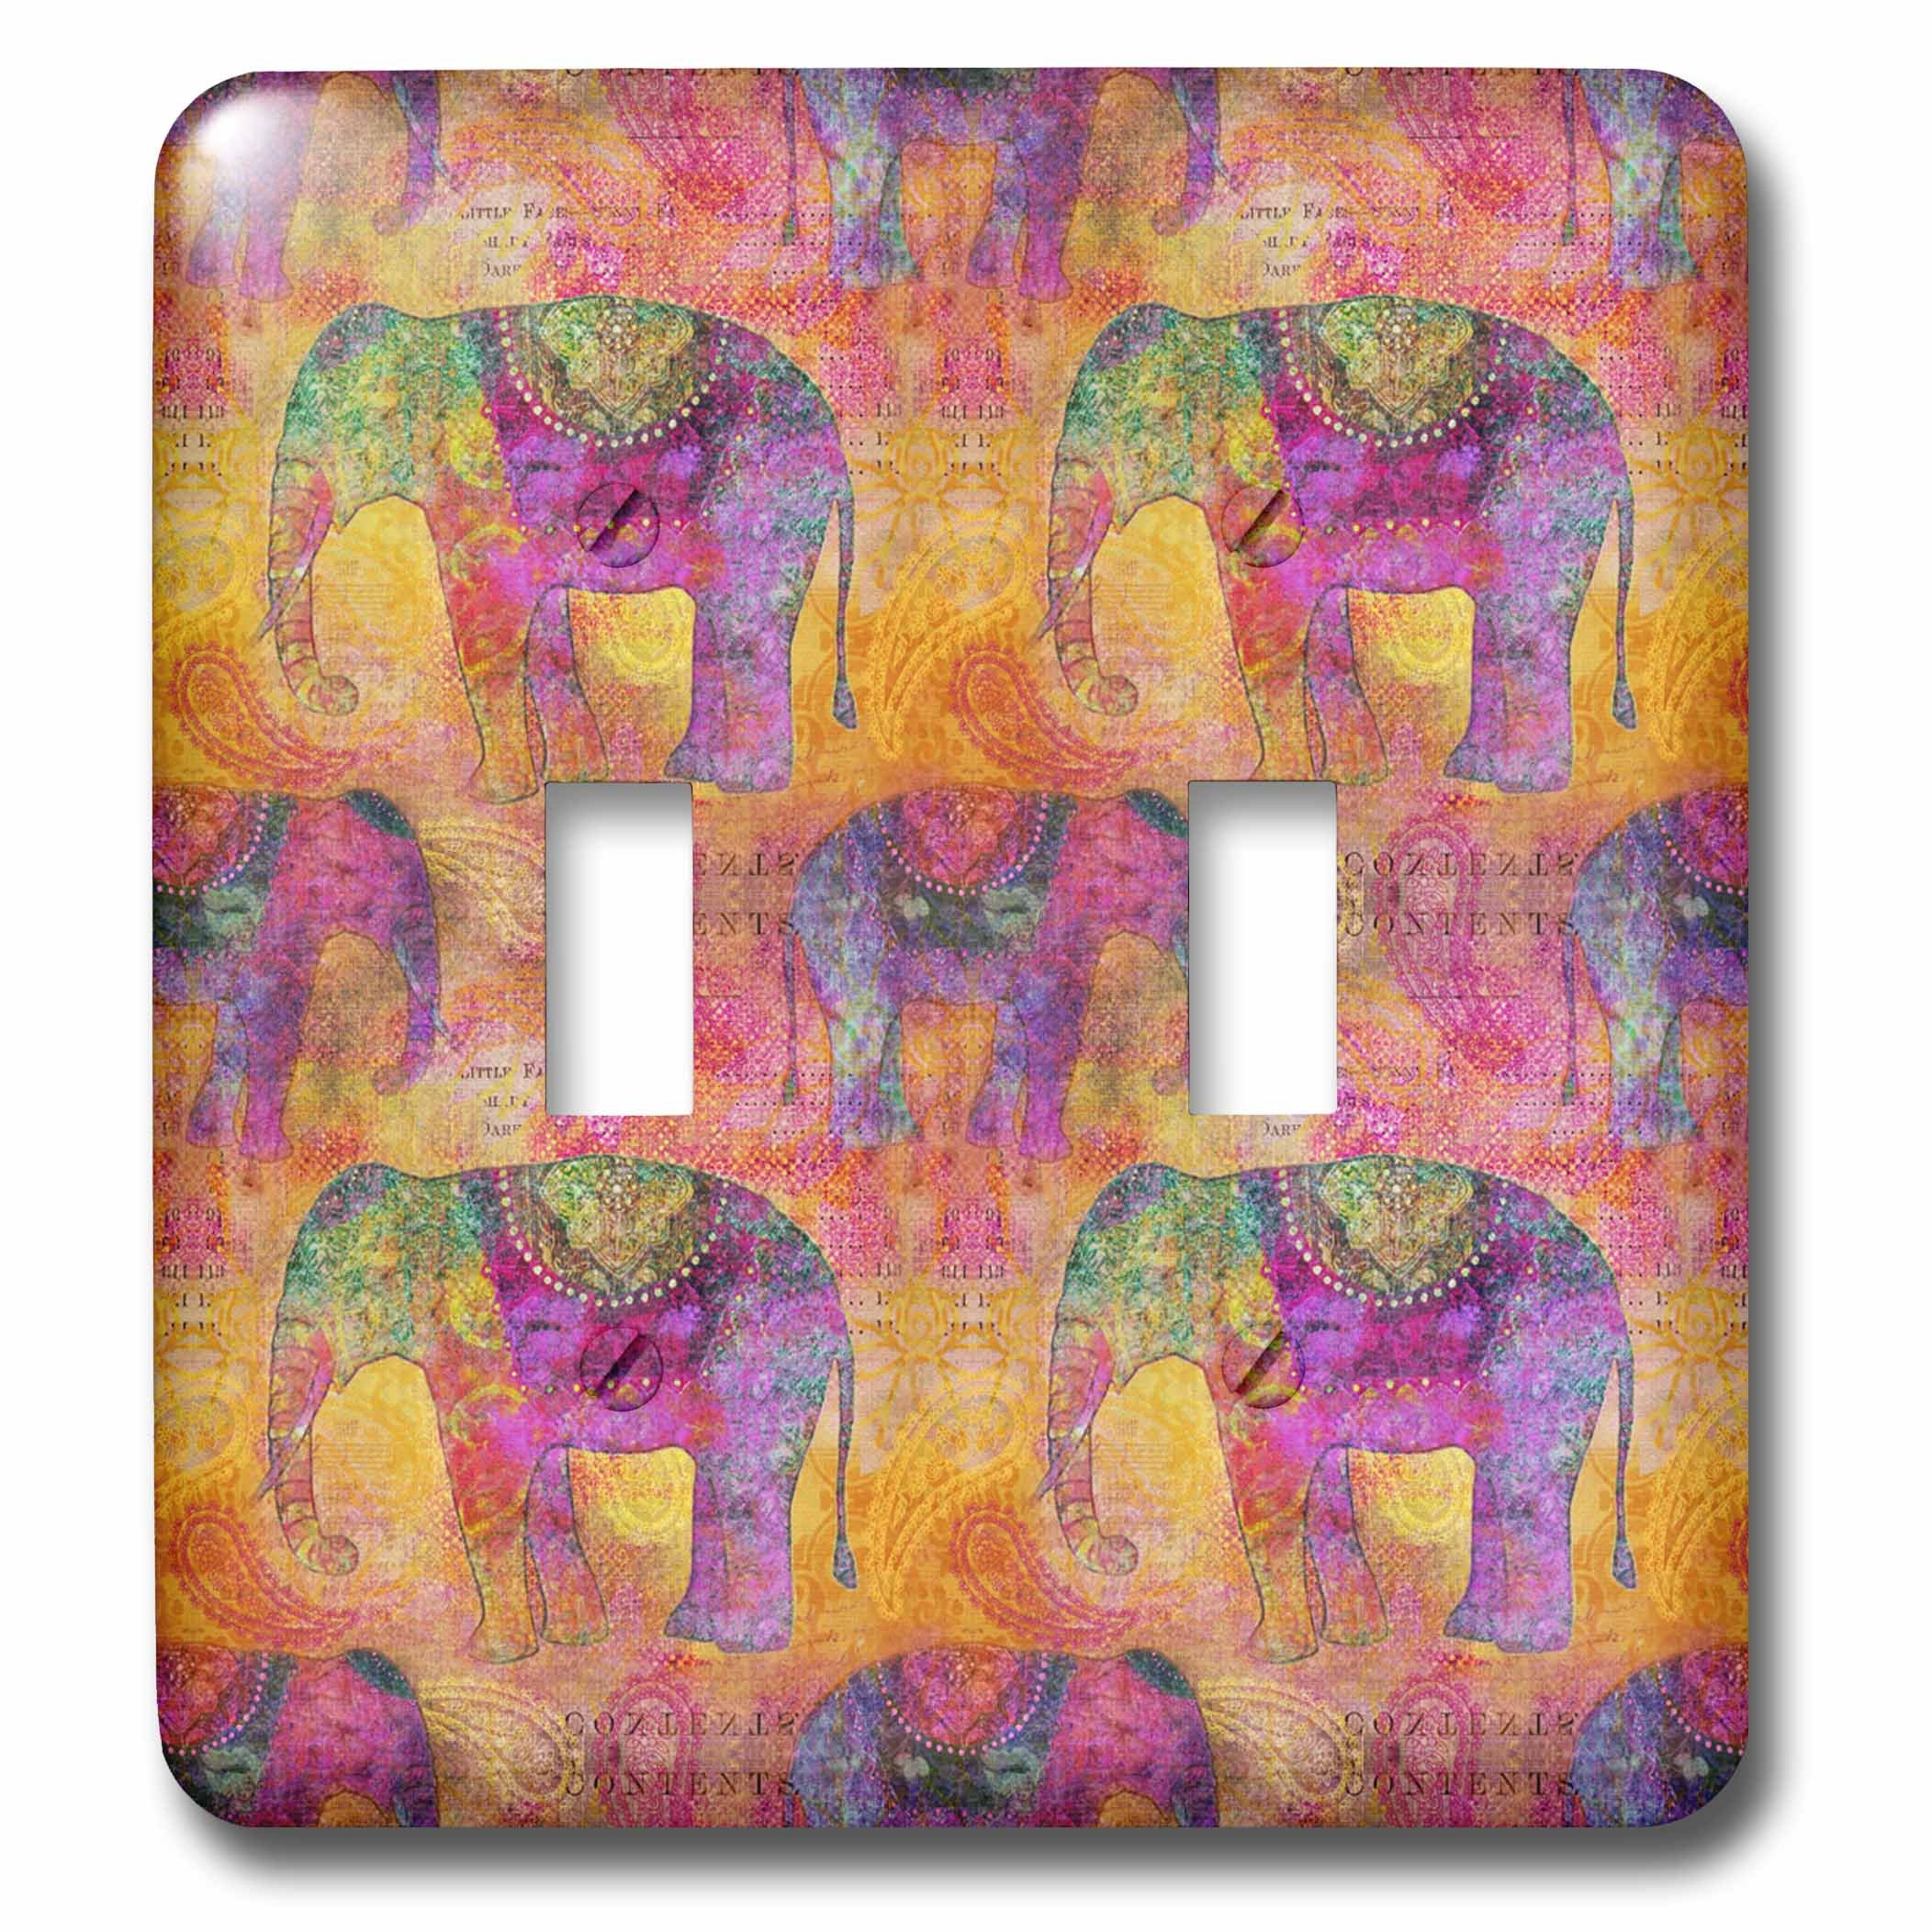 3dRose Andrea Haase Animals Illustration - Pattern of elephants India style in warm colors - Light Switch Covers - double toggle switch (lsp_266473_2)